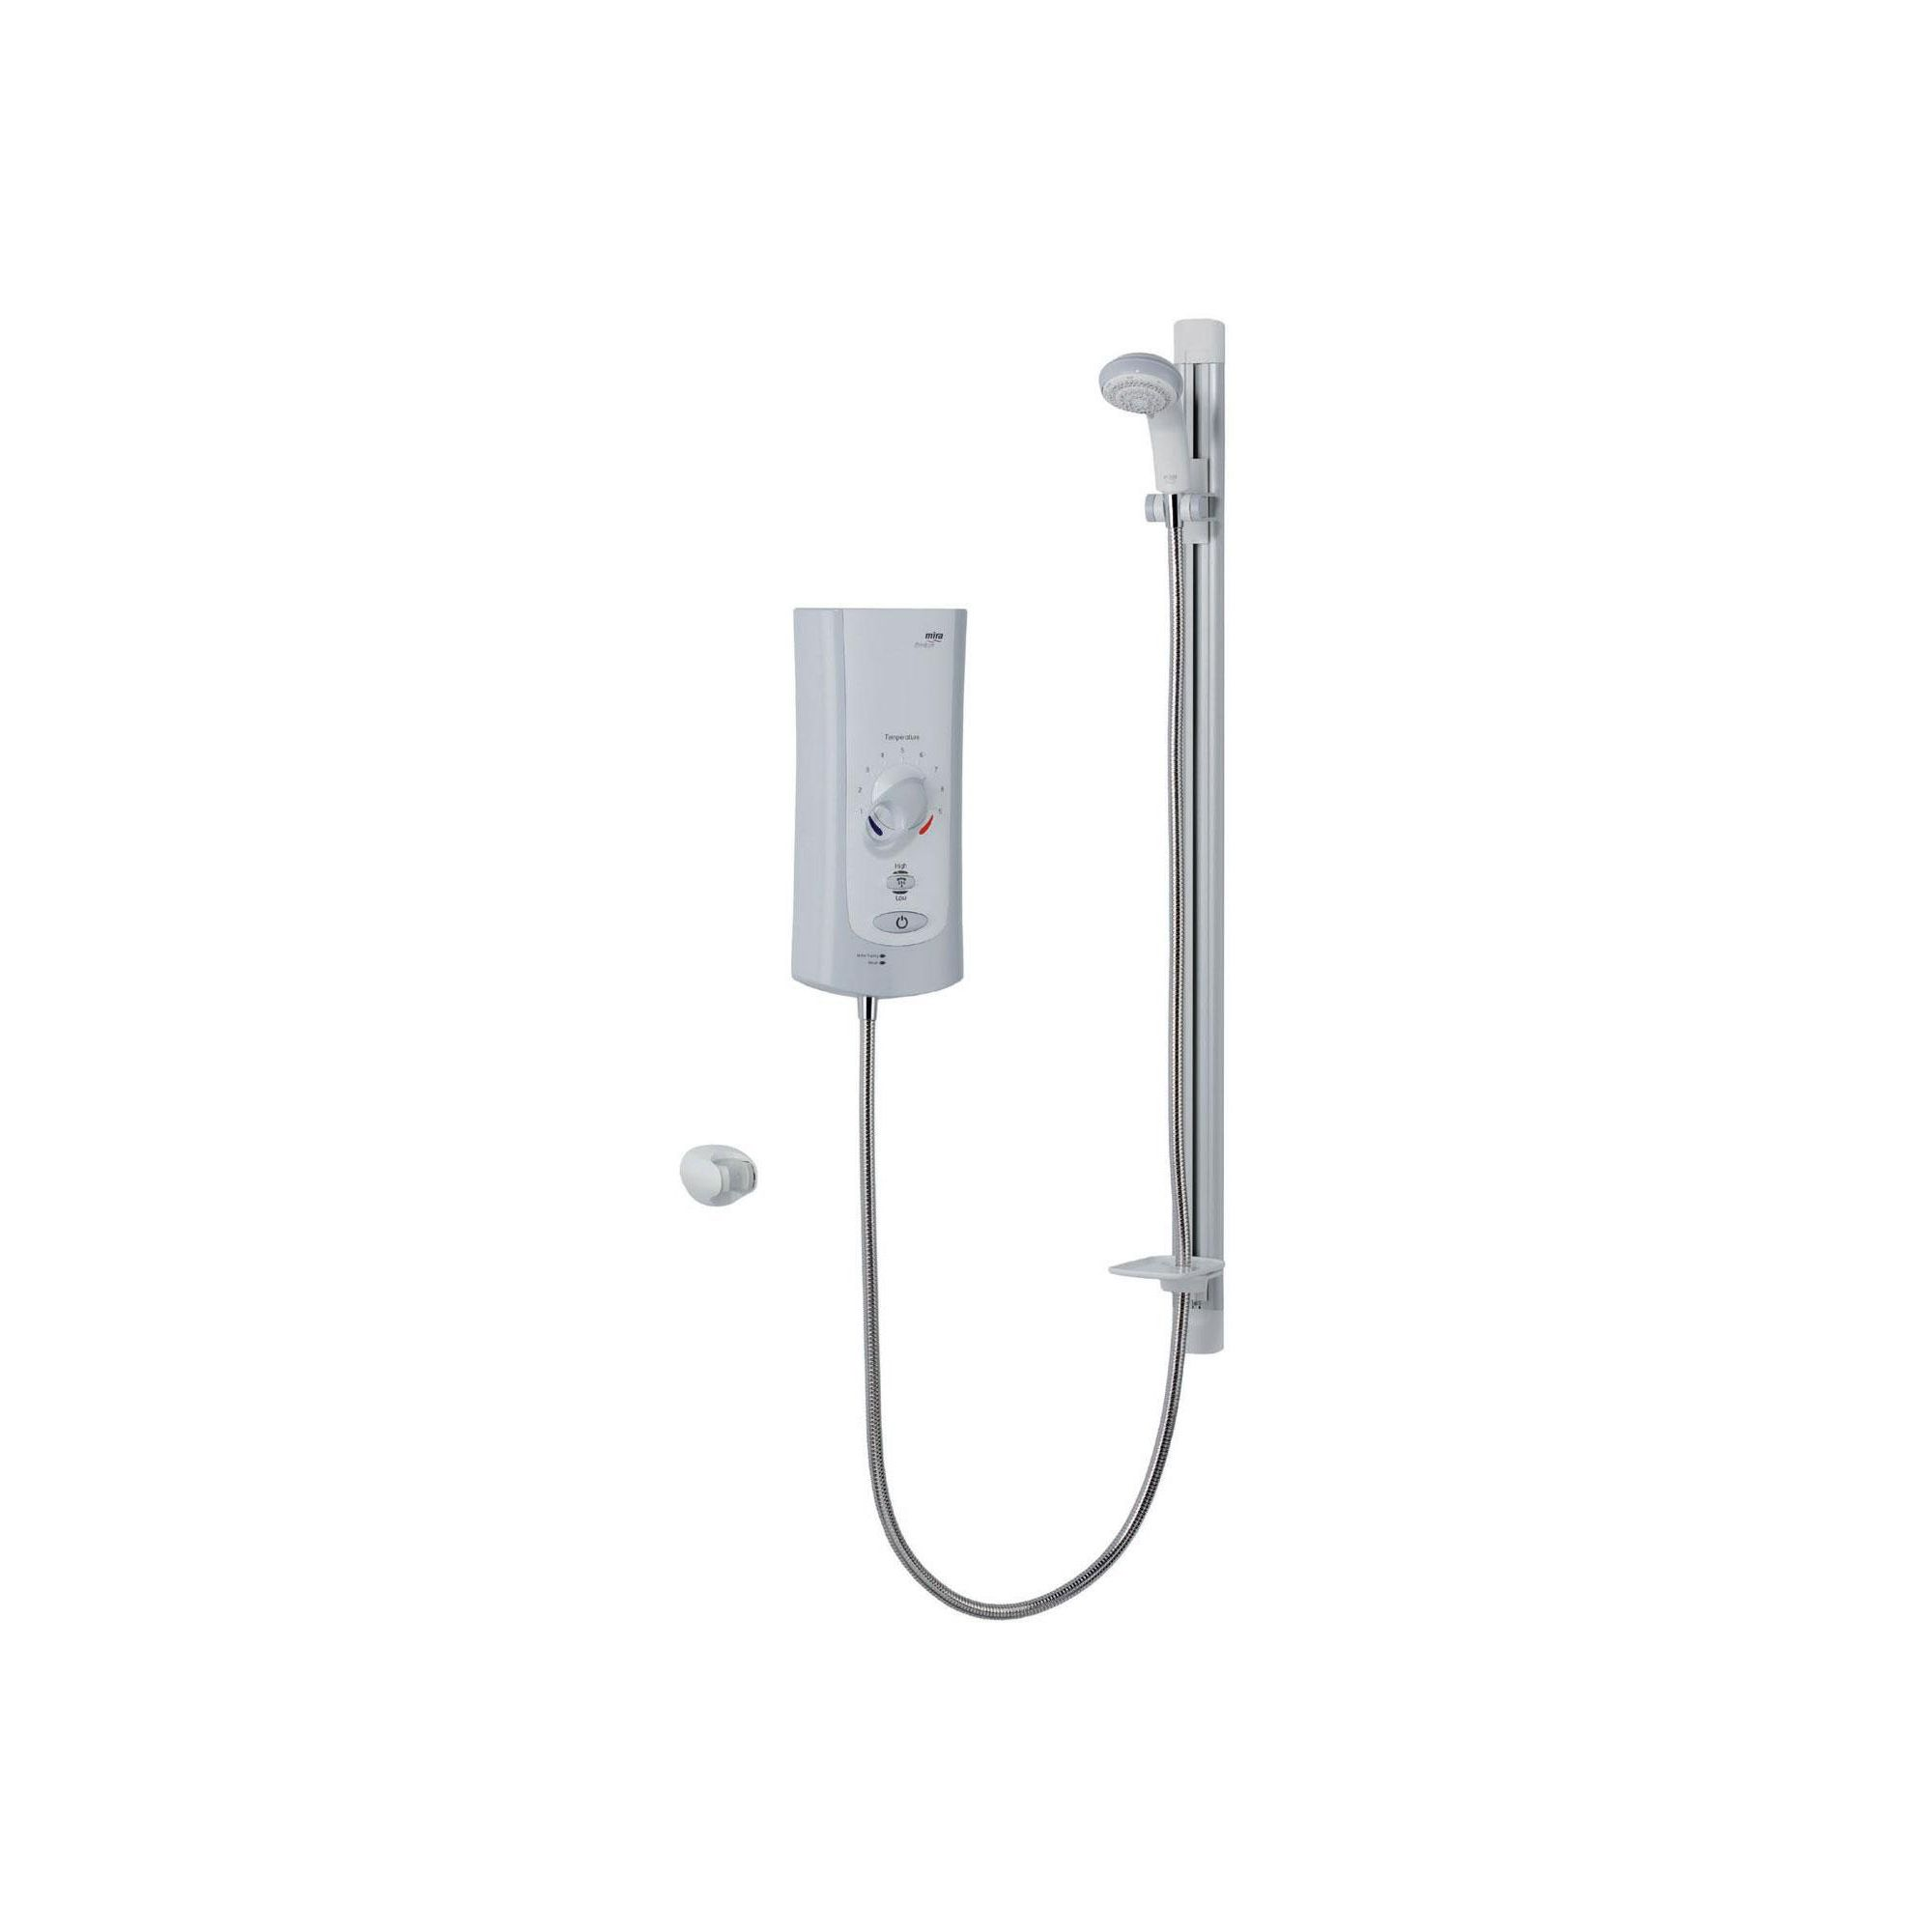 Mira Advance Flex 9.8kw Electric Shower at Tesco Direct